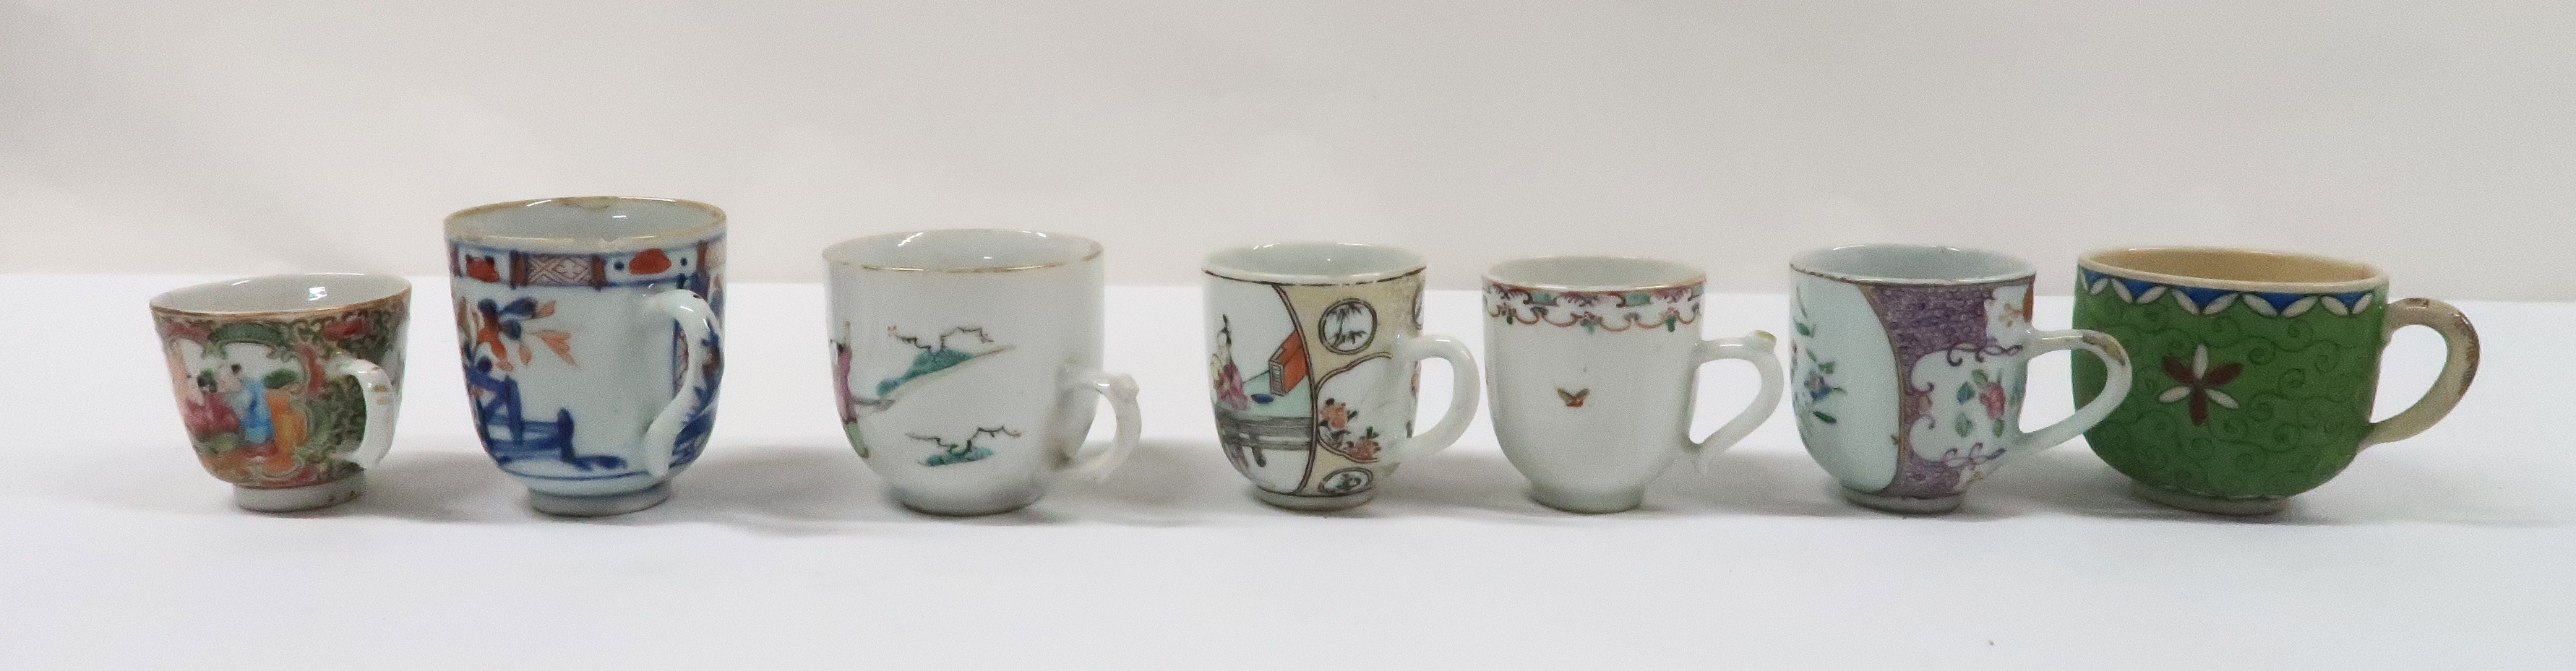 A COLLECTION OF CHINESE EXPORT TEAWARES and others including famille rose, Chien Lung, blue and - Image 10 of 22